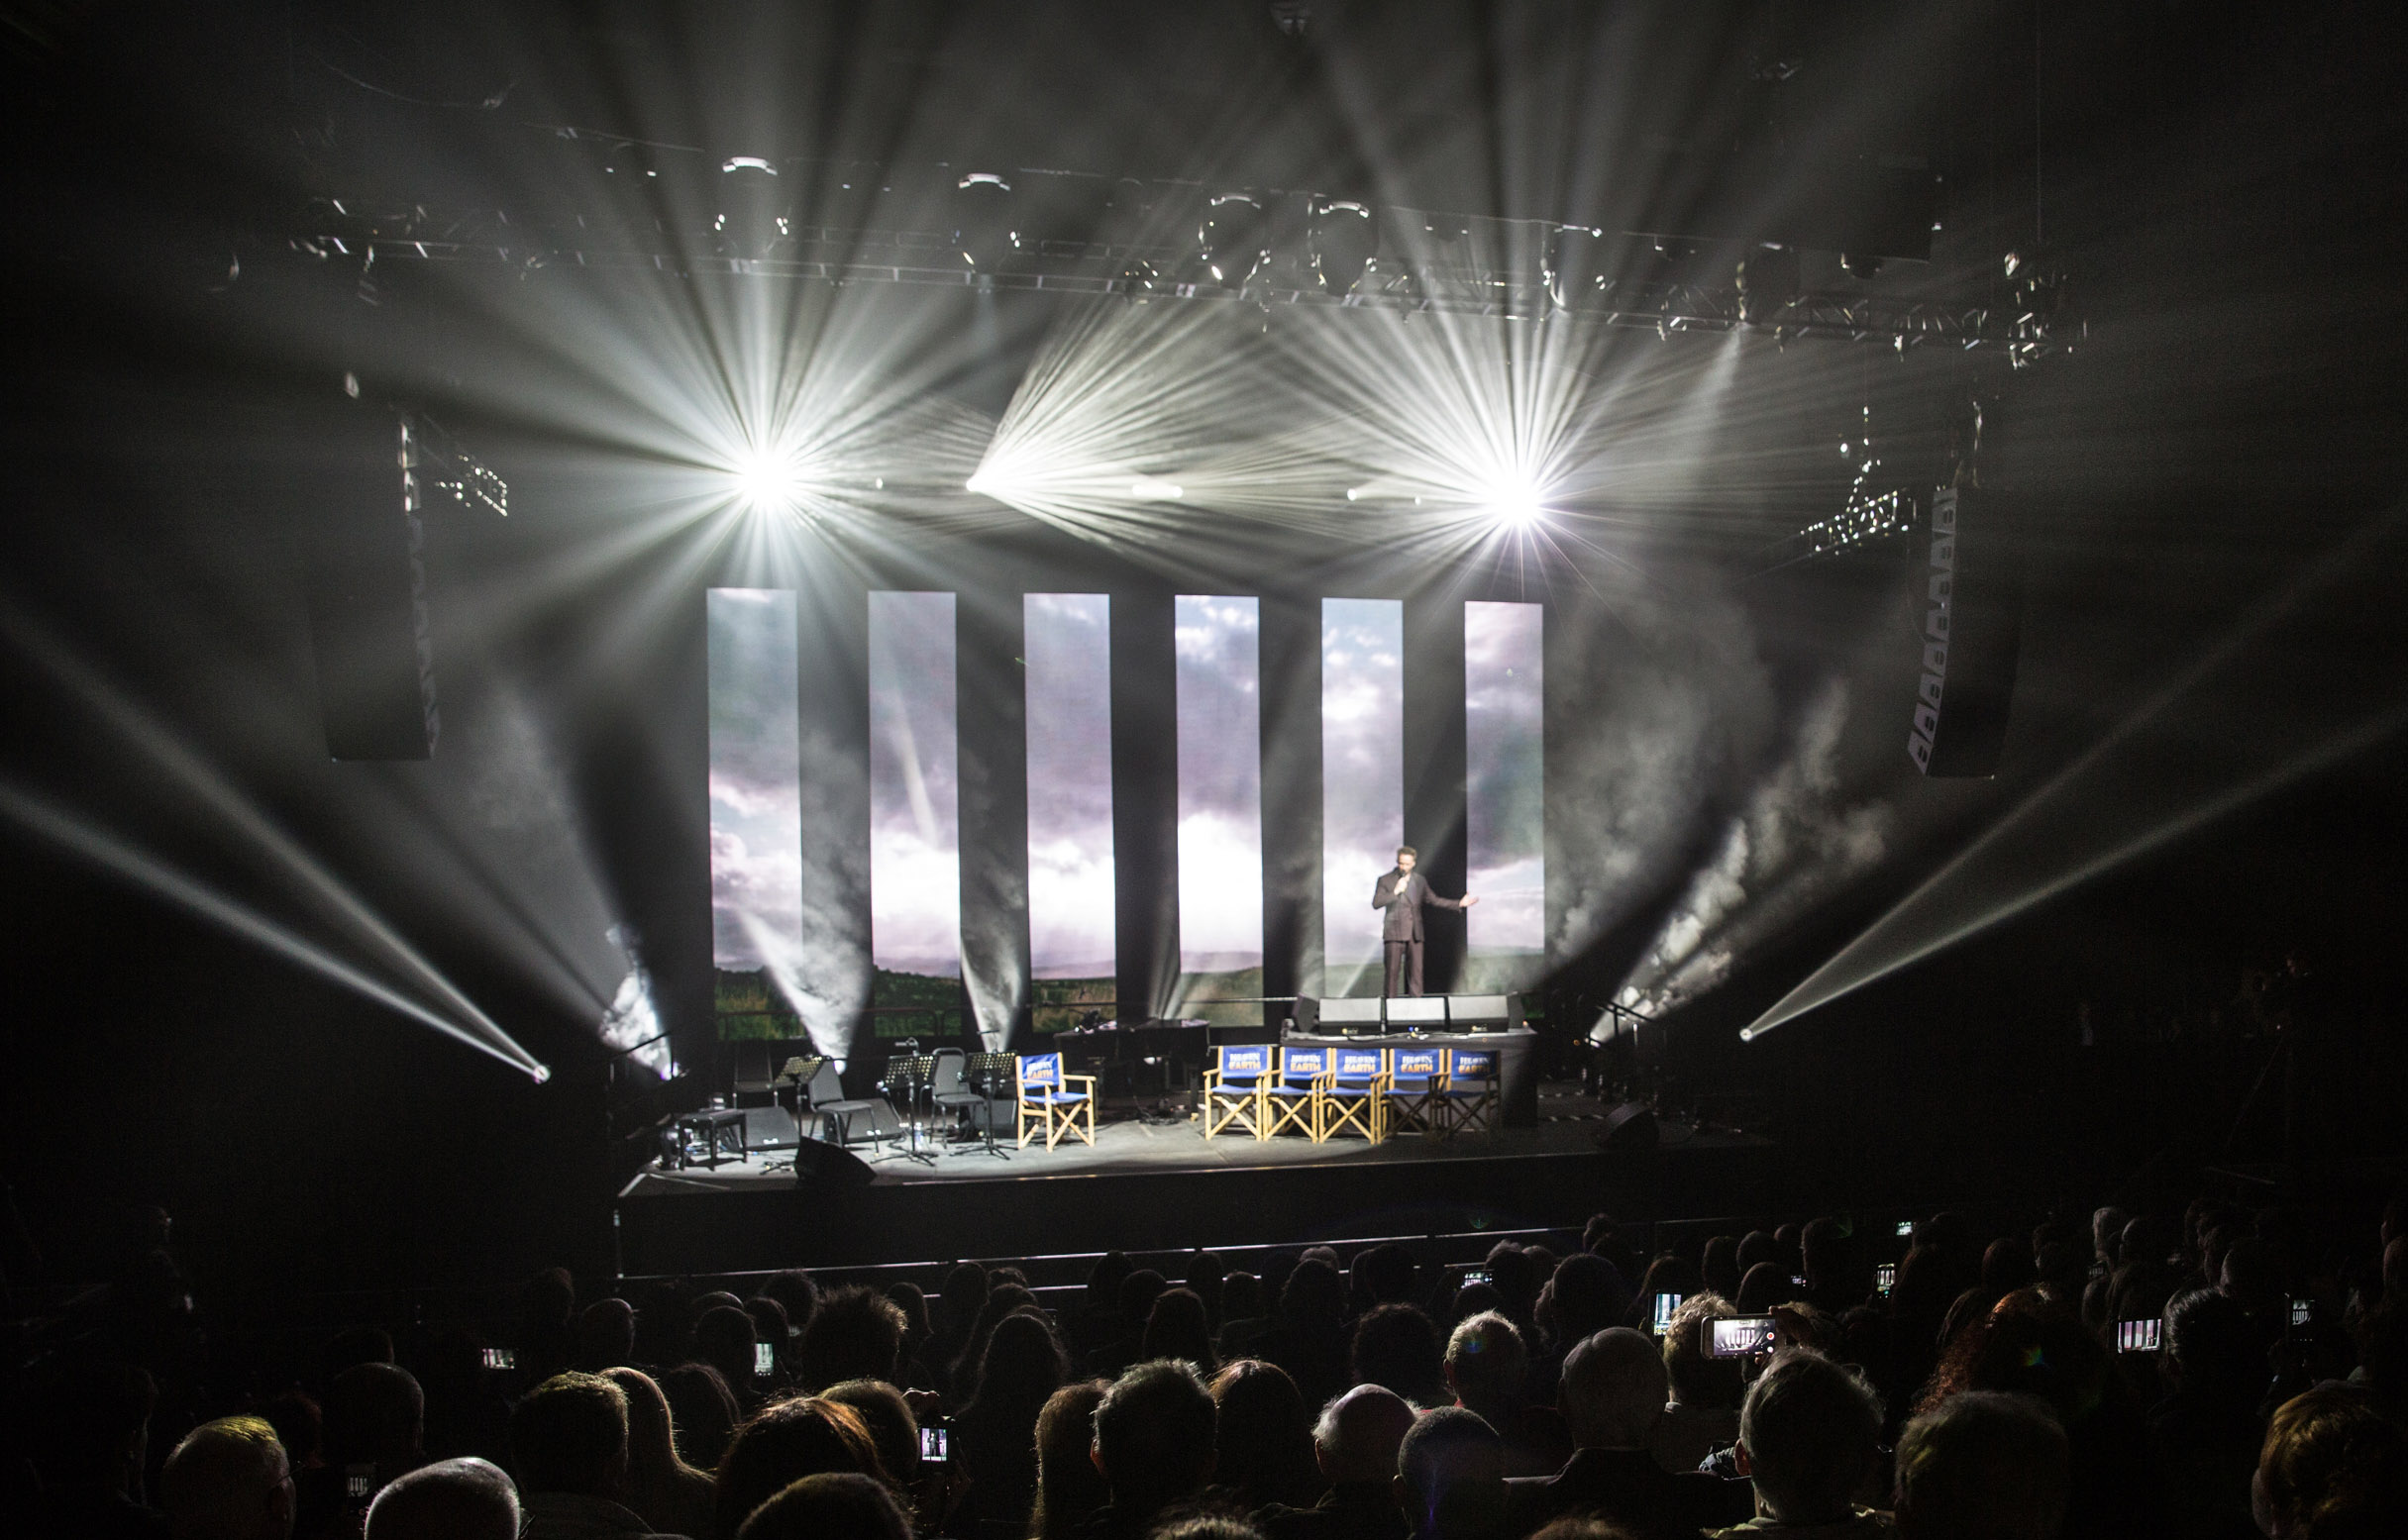 Avolites video and light integration system is 'Heaven on Earth' for new arena spectacular